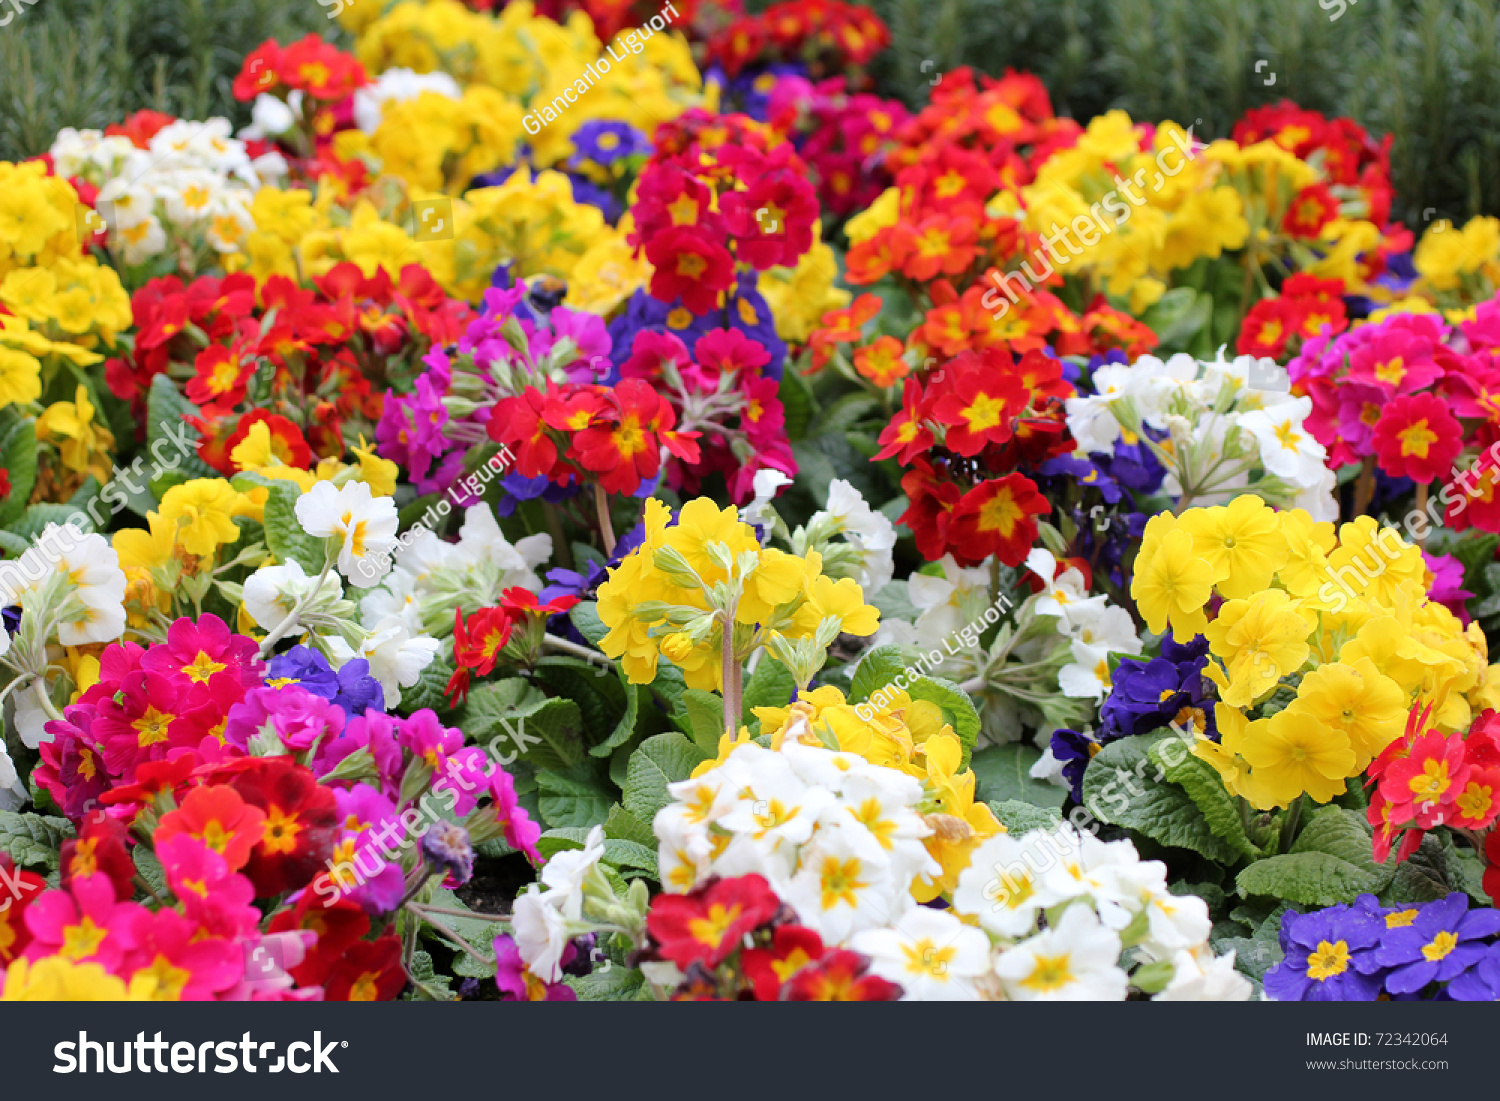 garden full of flowers stock photo 72342064 shutterstock